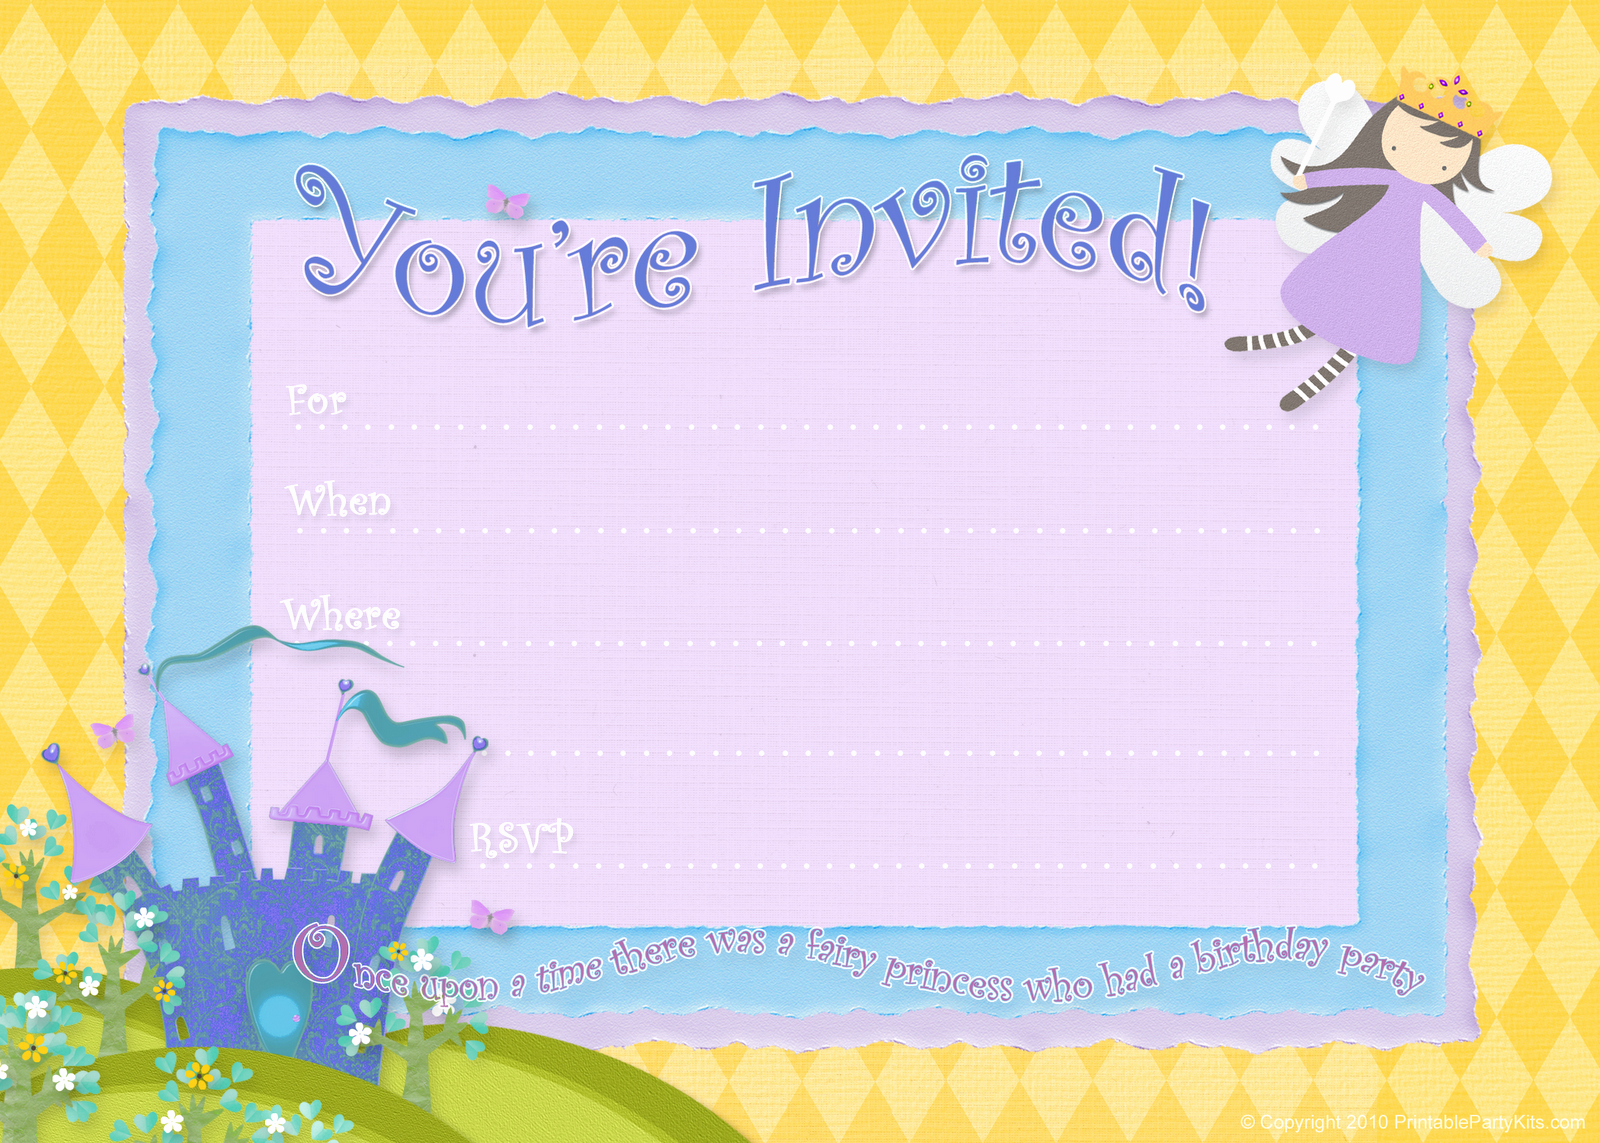 Party Invitation Templates Free Download Beautiful Free Birthday Party Invitations – Bagvania Free Printable